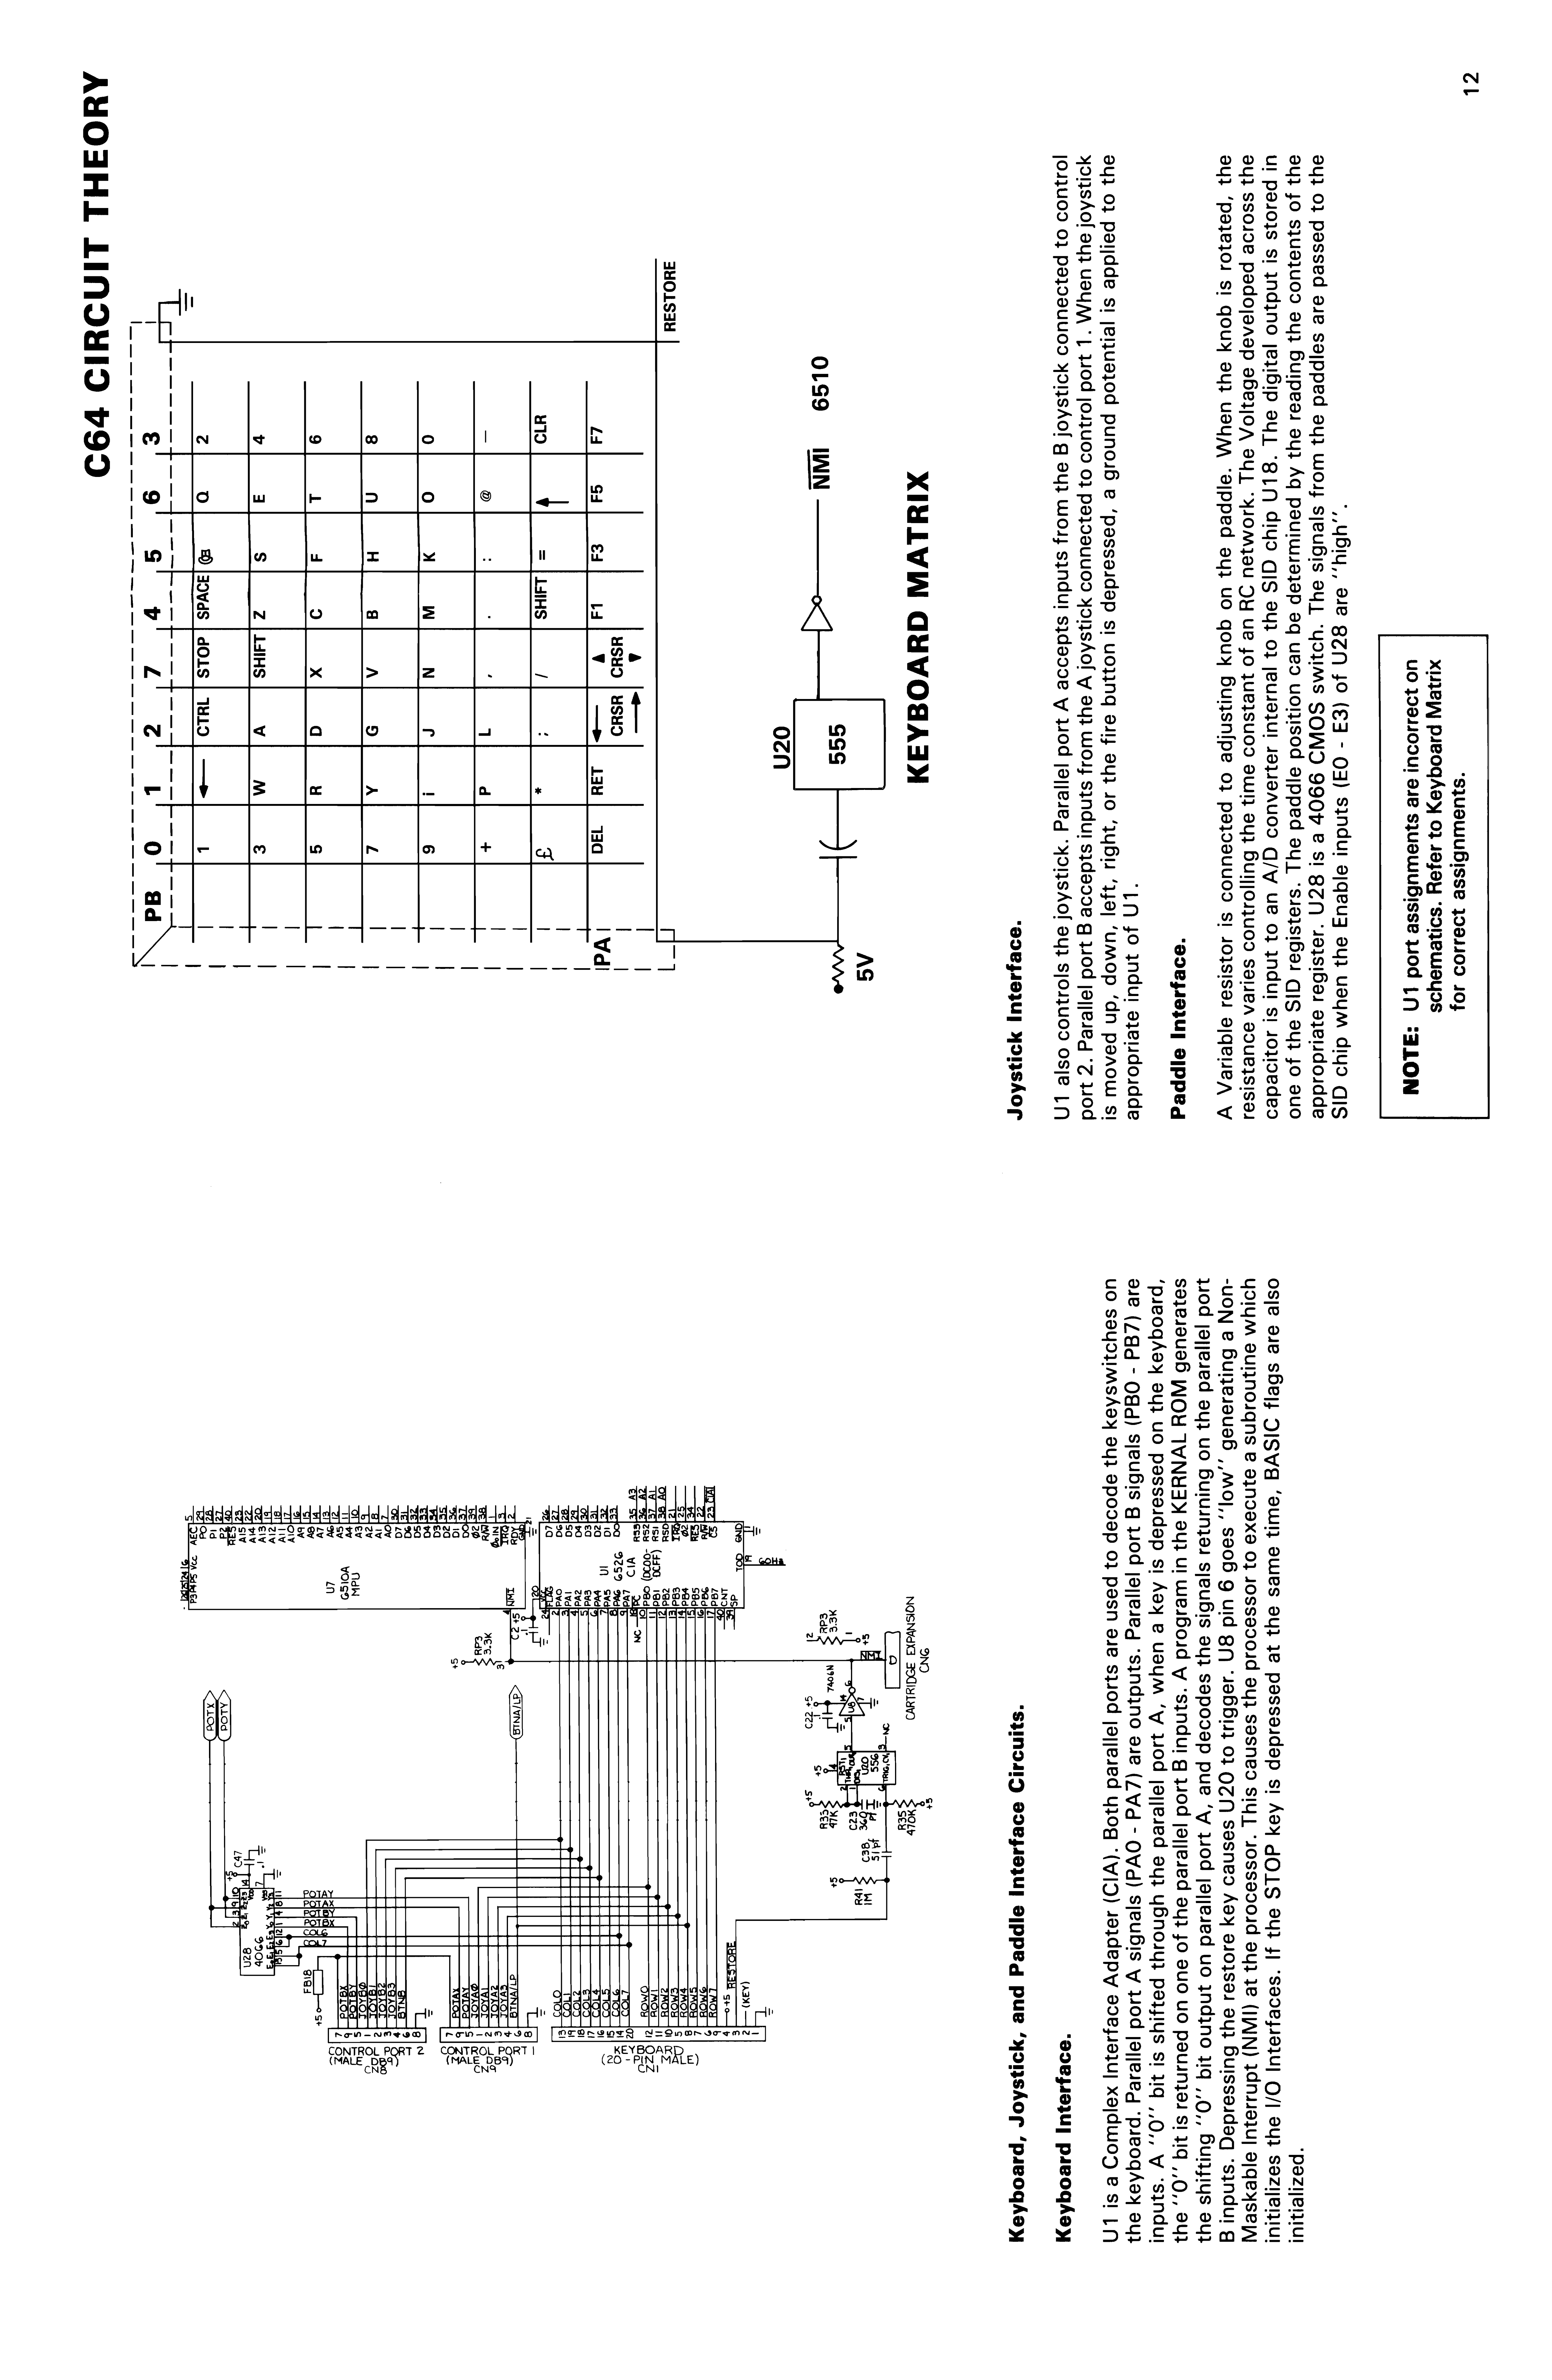 Service Manual C64 C64c March 1992 Pn Commodore Business Machines Schematic For The Parallel Port Driver Matrix As Ports Serial Outputs And Timers Are Standard Features Of Cia Read Data Enters On Pins D 4 Cn3 U1 Accepts Signal